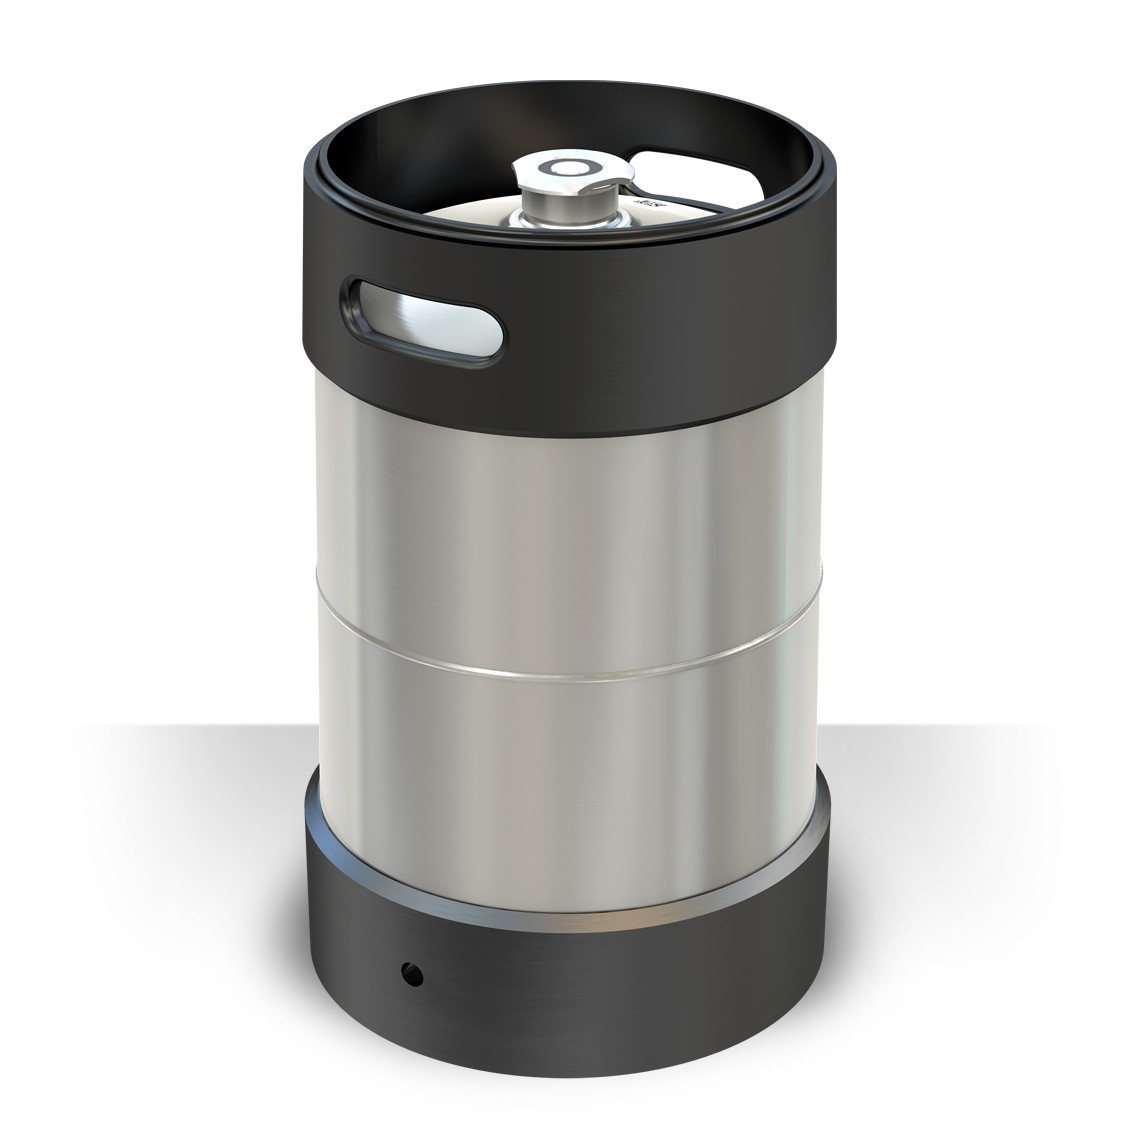 Strong and variable Keg